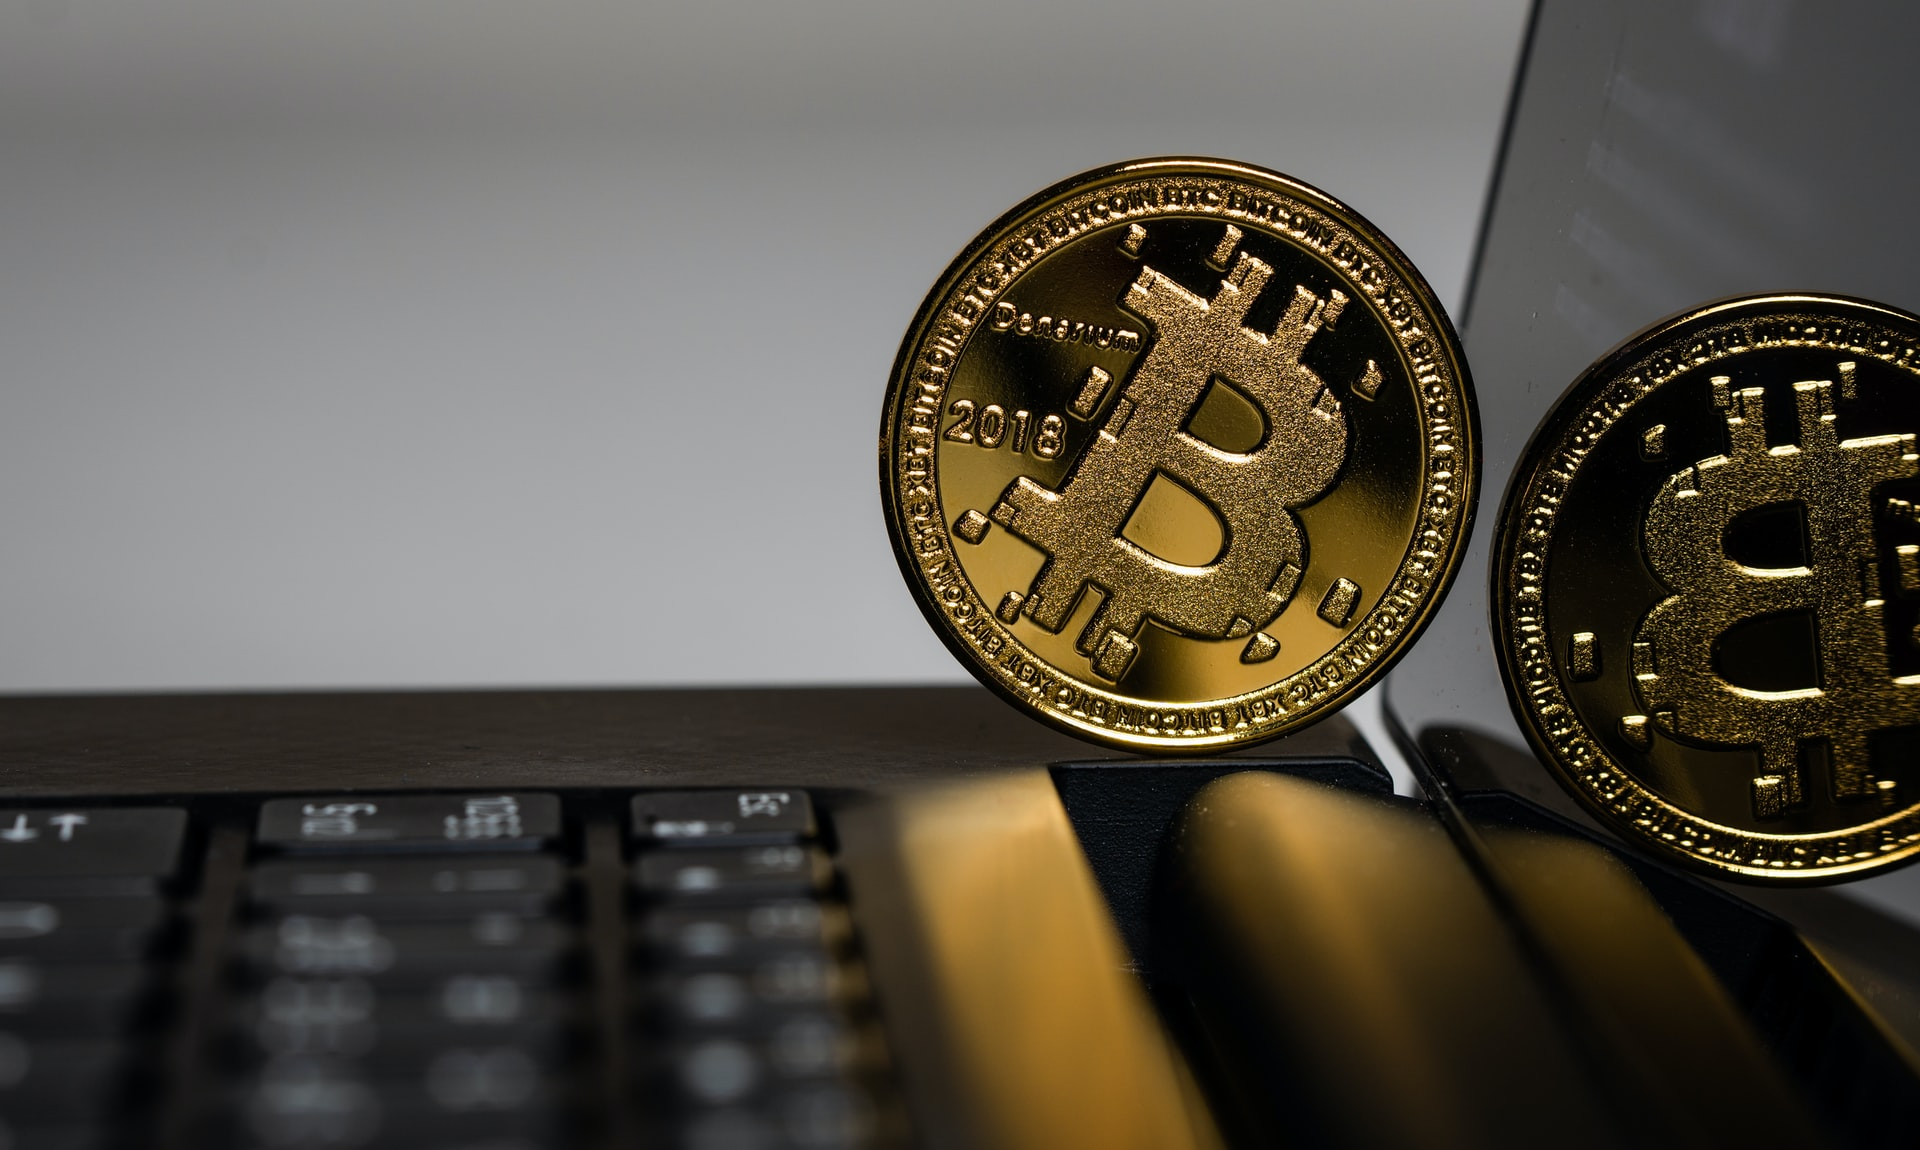 Bitcoin on laptop